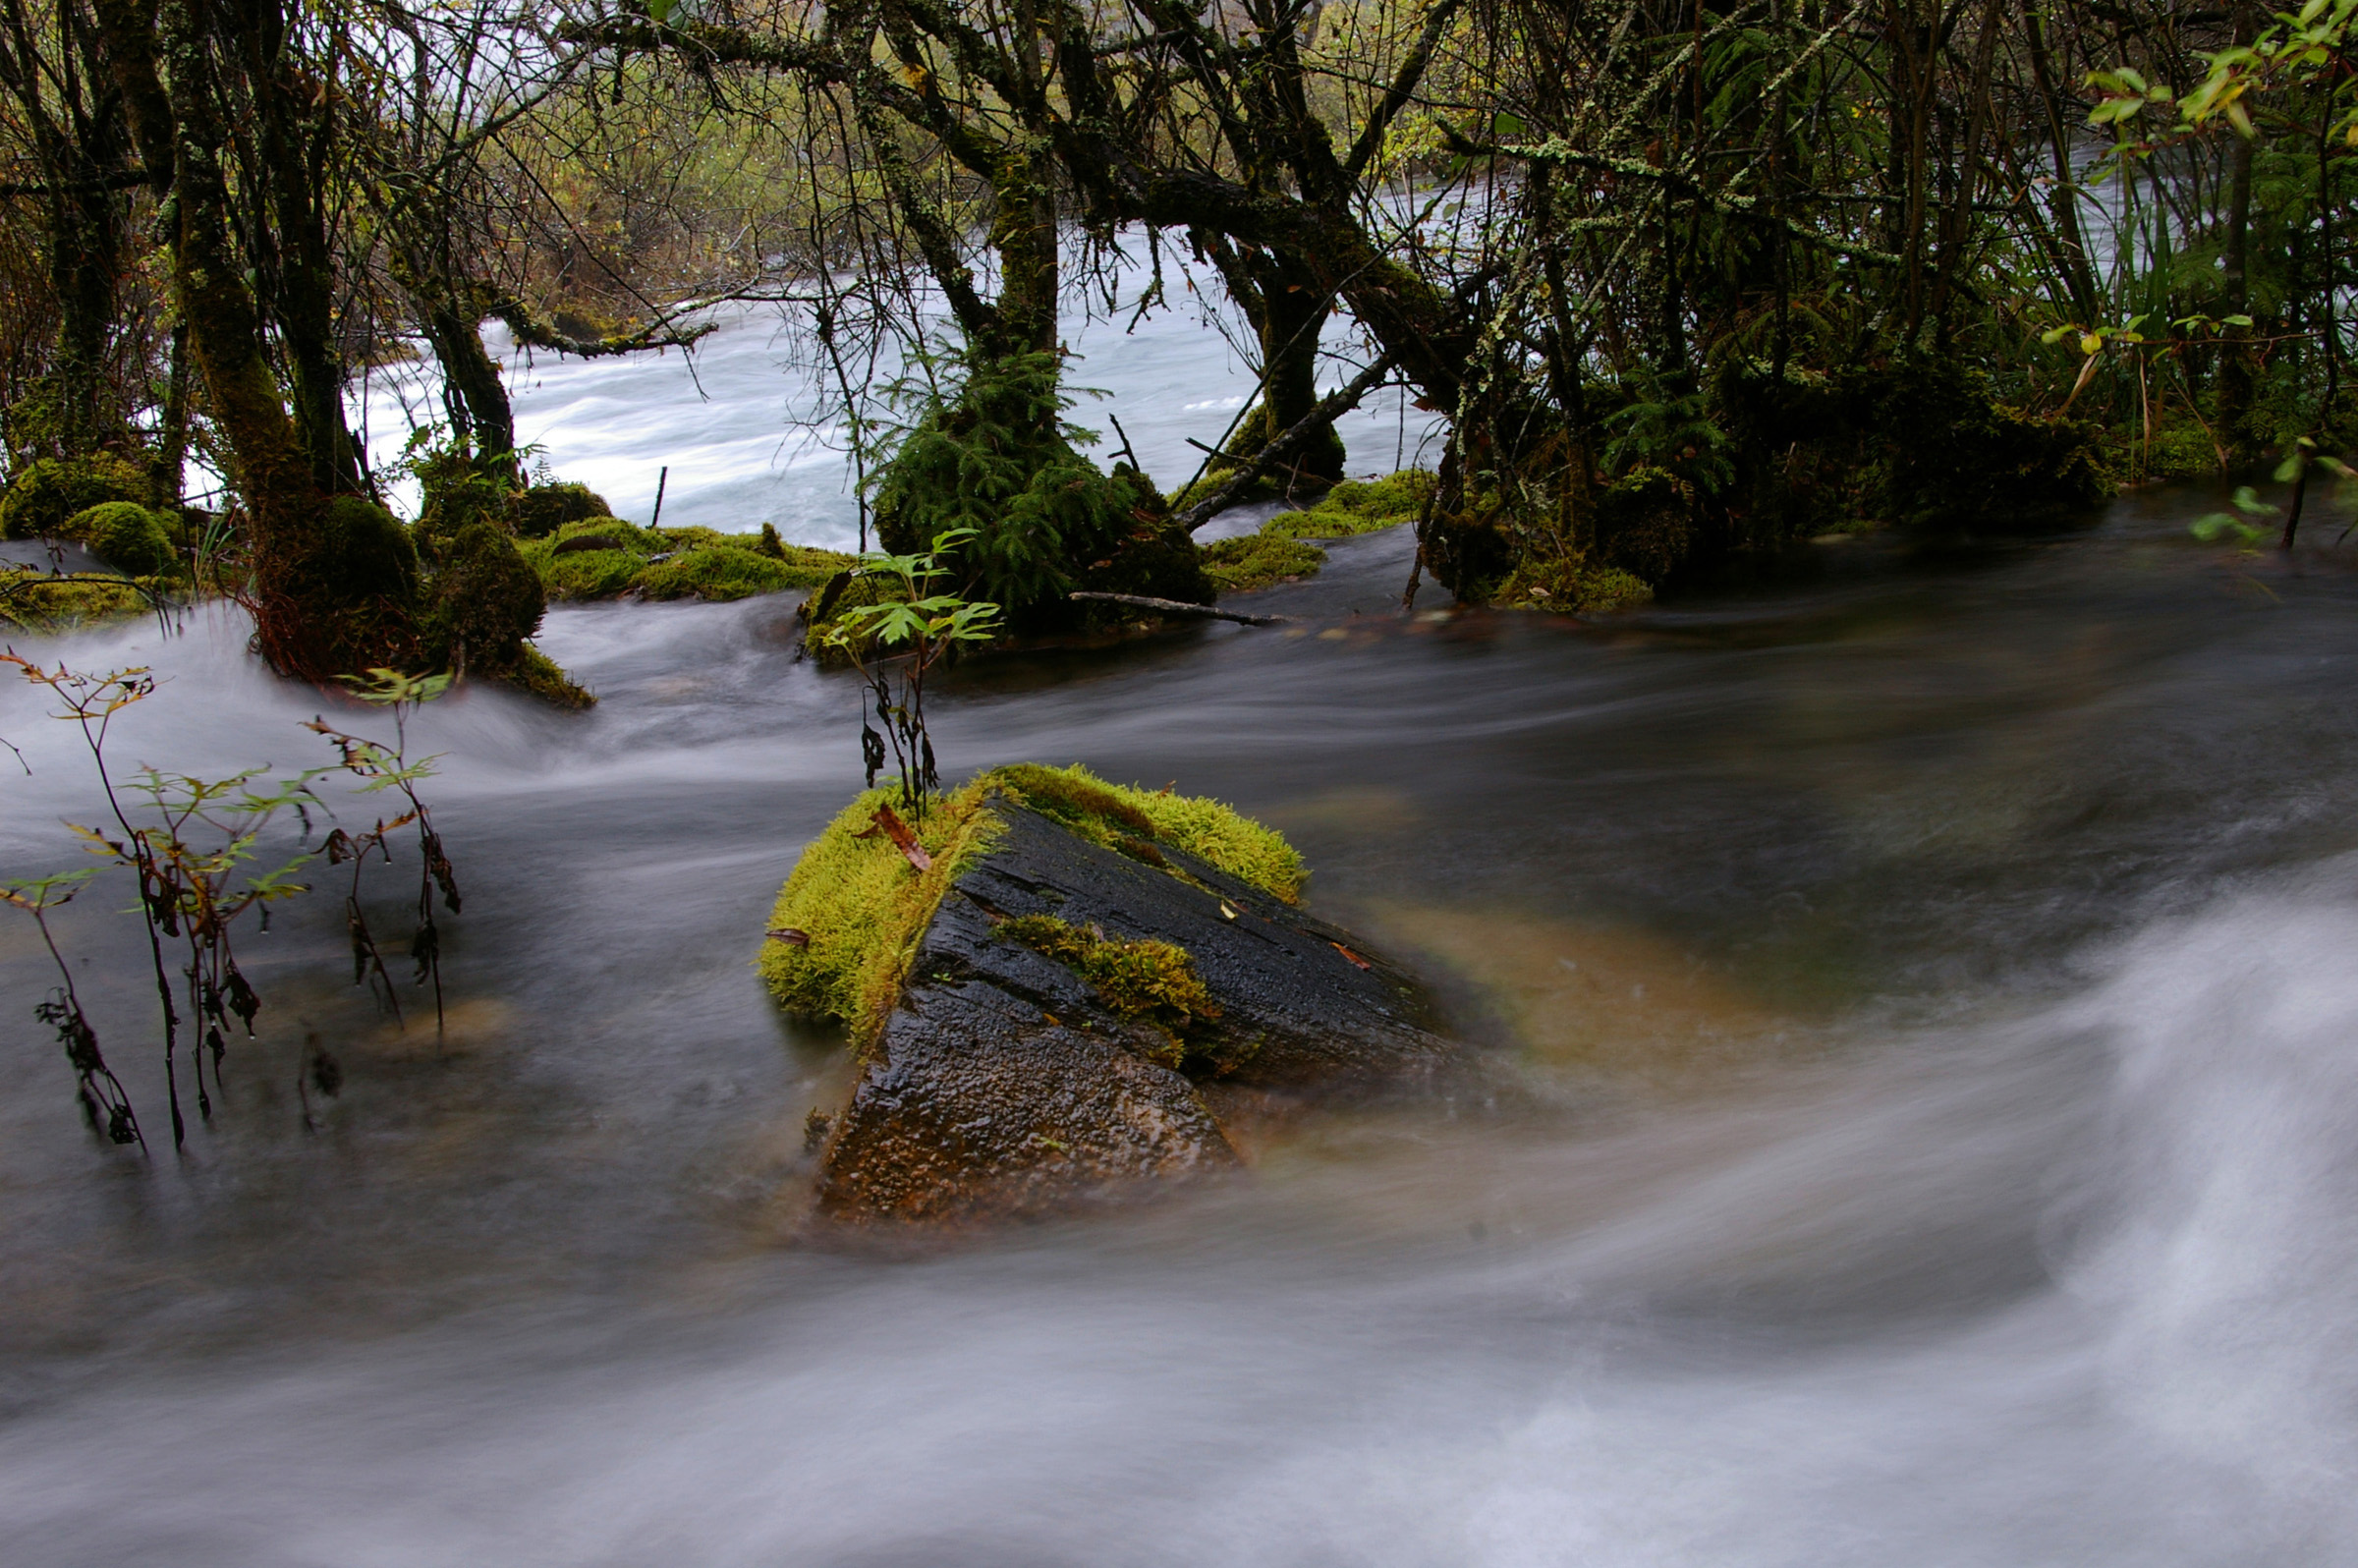 Nature Scenic of Moss Covered Rocks in Flowing River